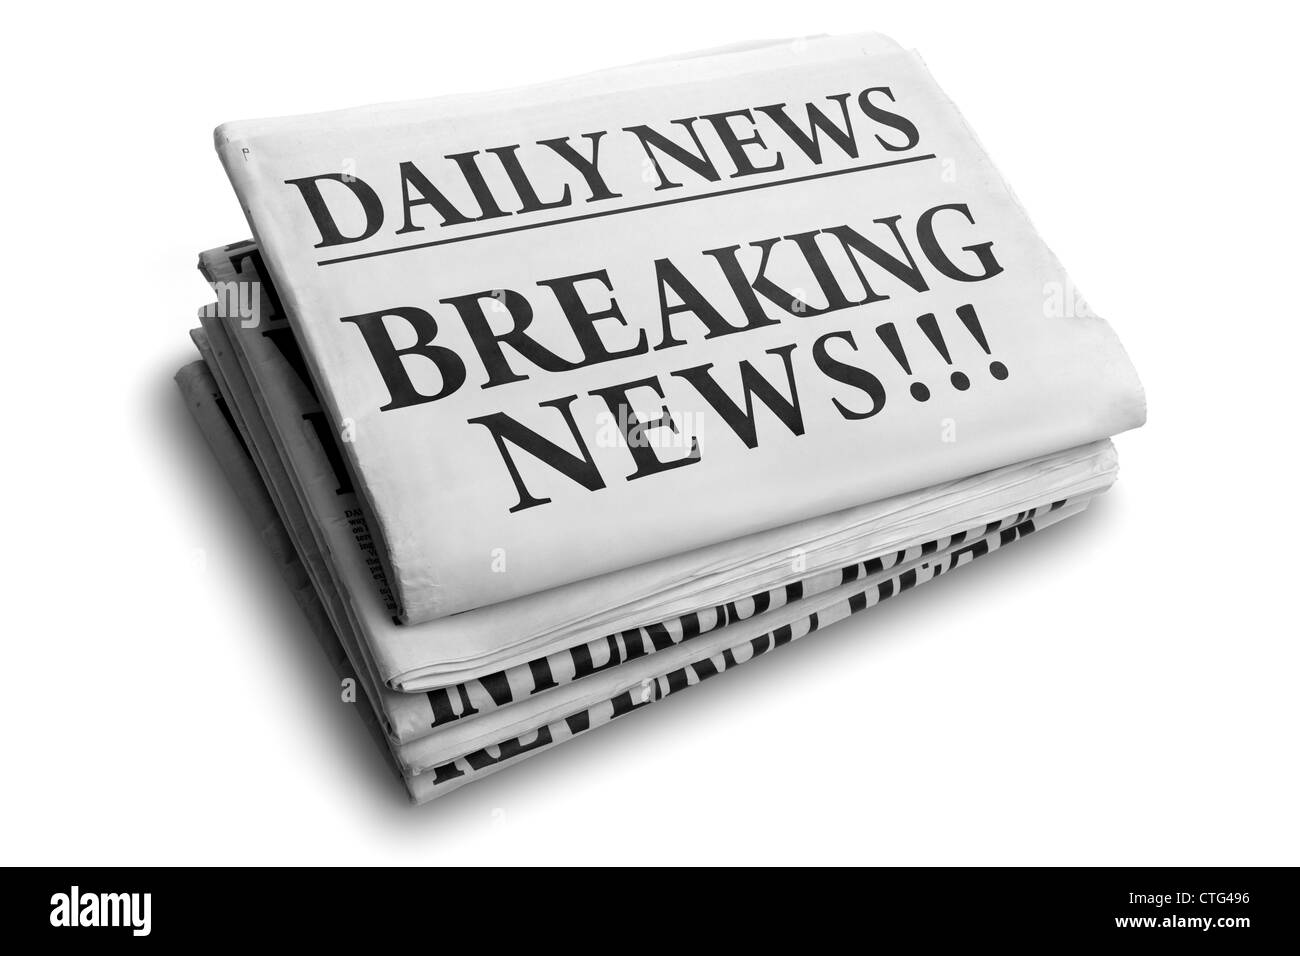 Breaking news daily newspaper headline - Stock Image